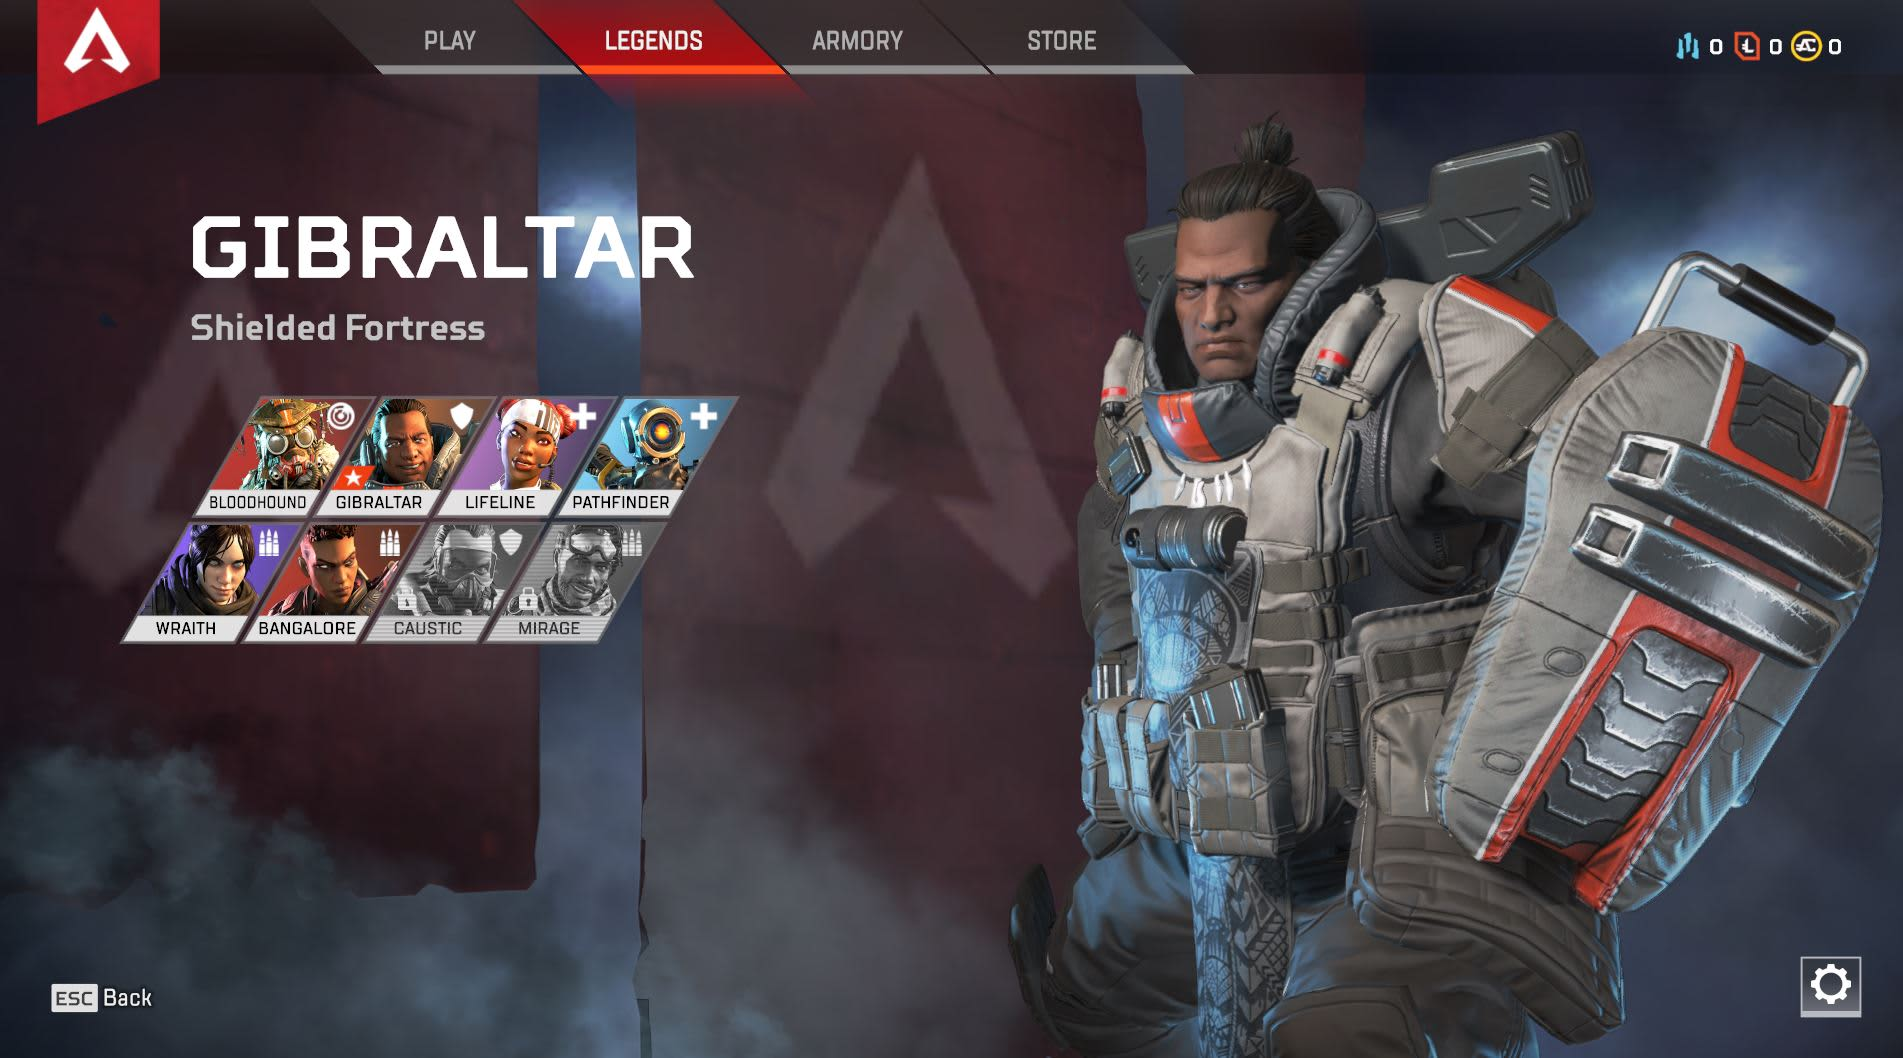 EA Apex Legends: How it makes money and how it compares to Fortnite